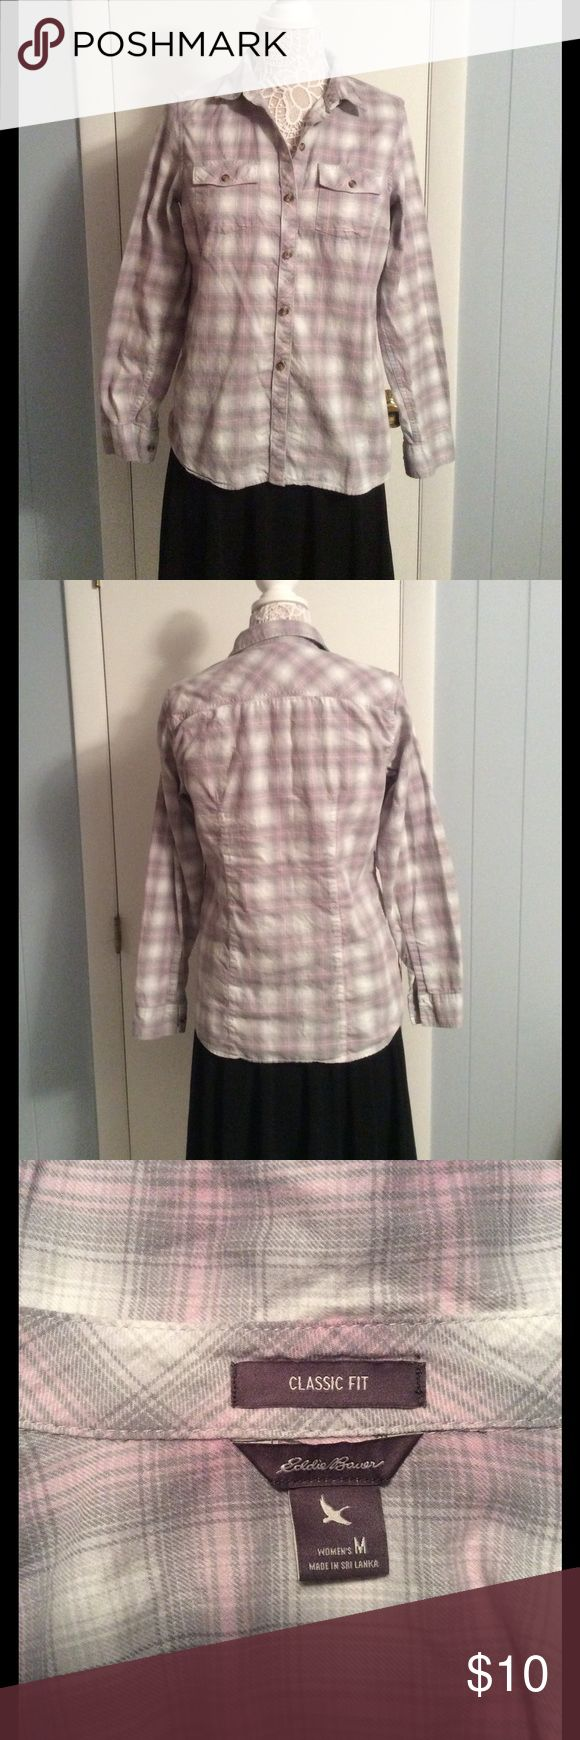 Women's Flannel Shirt Women's flannel shirt. Size M. Semi fitted. Worn, but in good condition. Eddie Bauer Tops Button Down Shirts